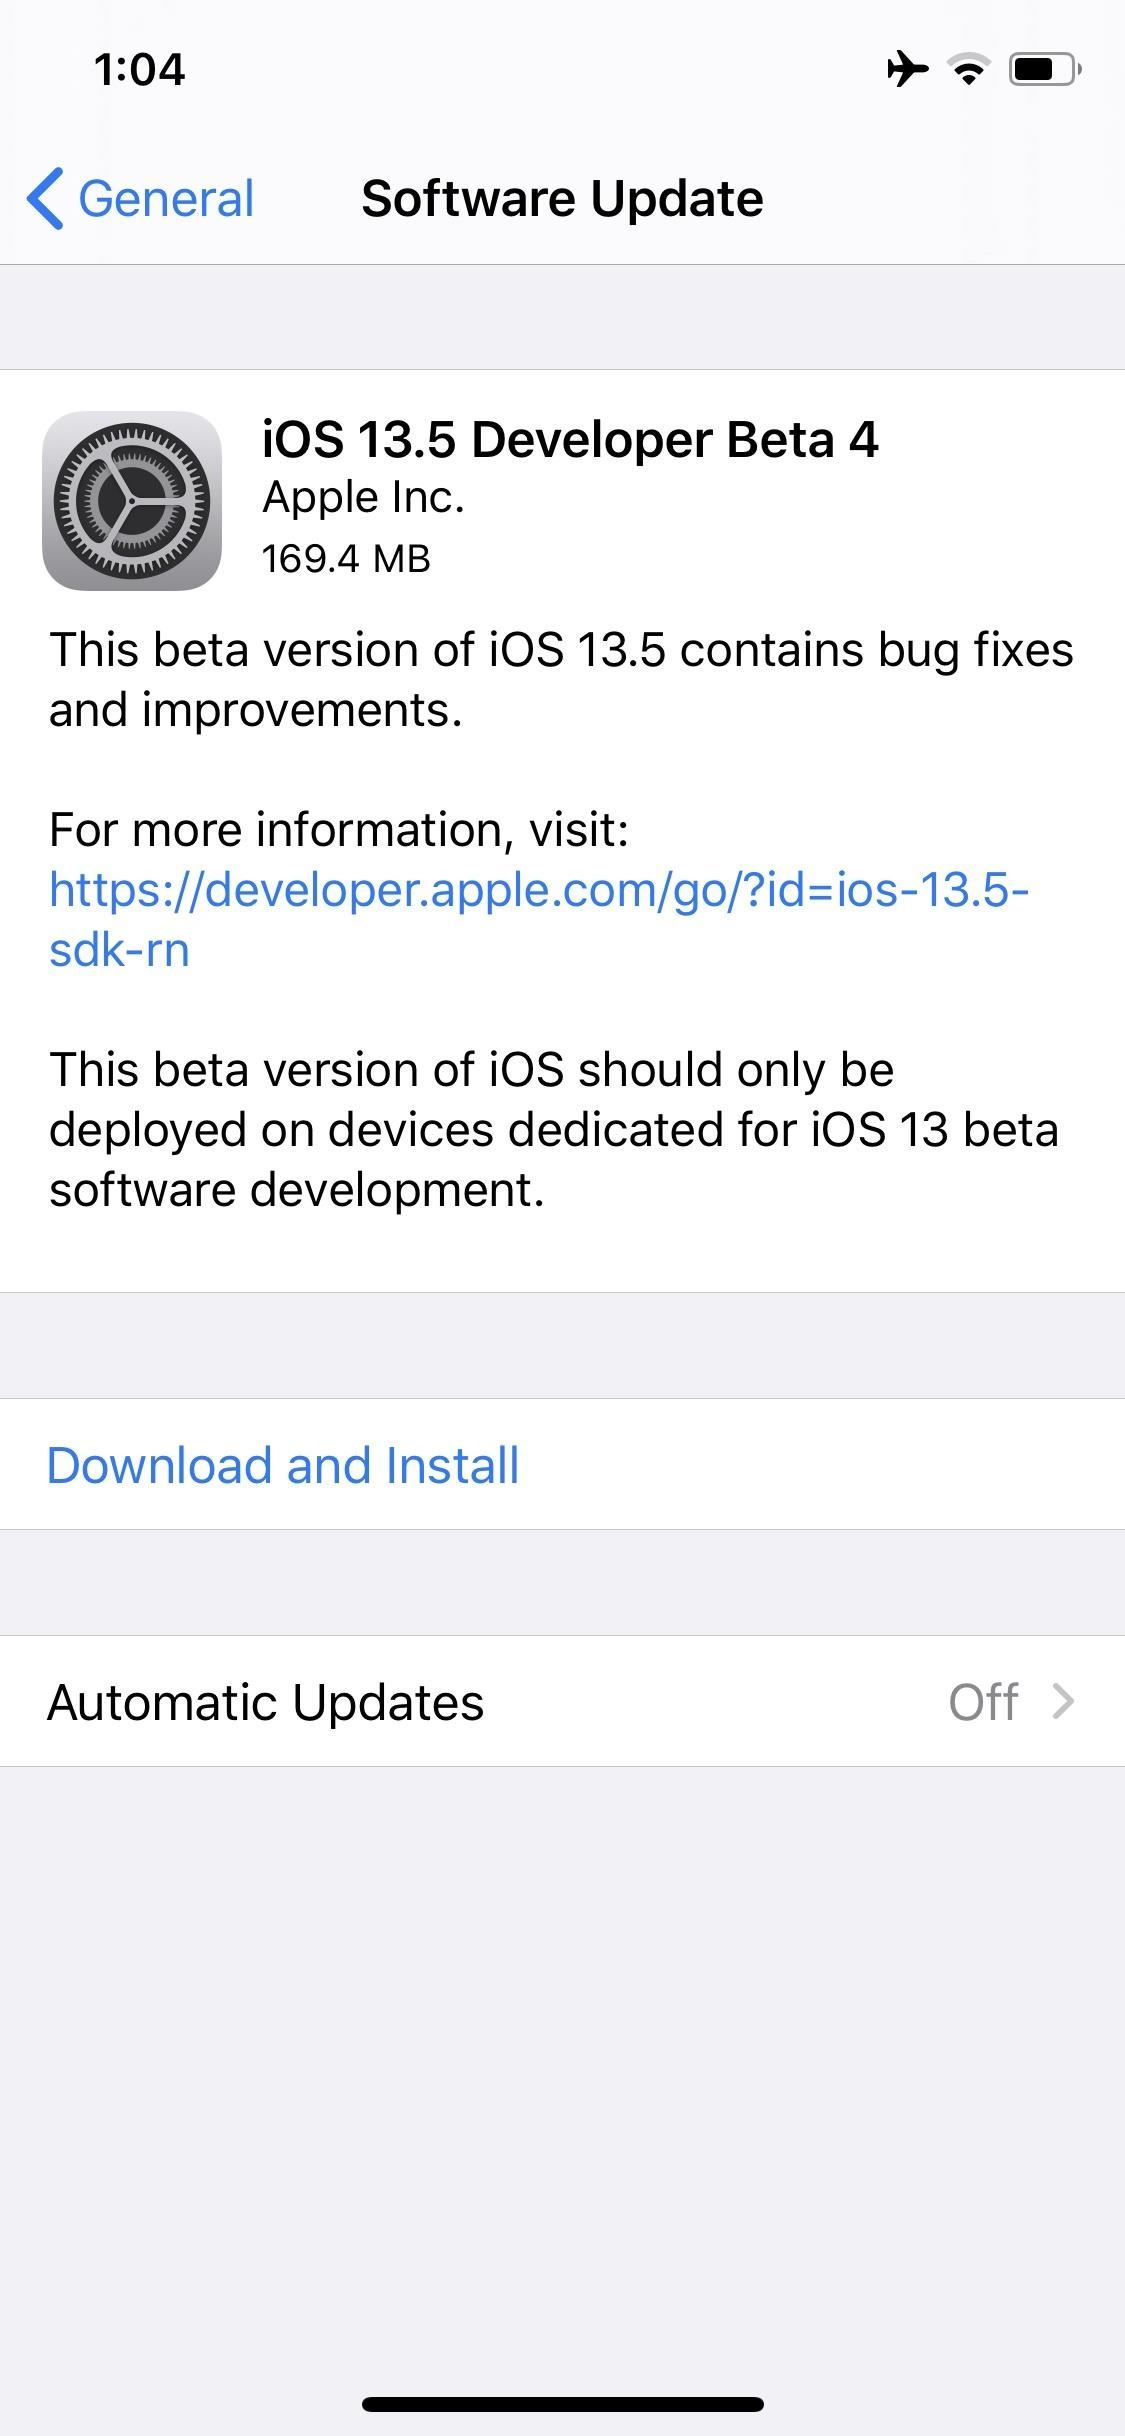 Apple Releases iOS 13.5 Developer Beta 4 for iPhone, Includes Updated COVID-19 Exposure Logging Settings